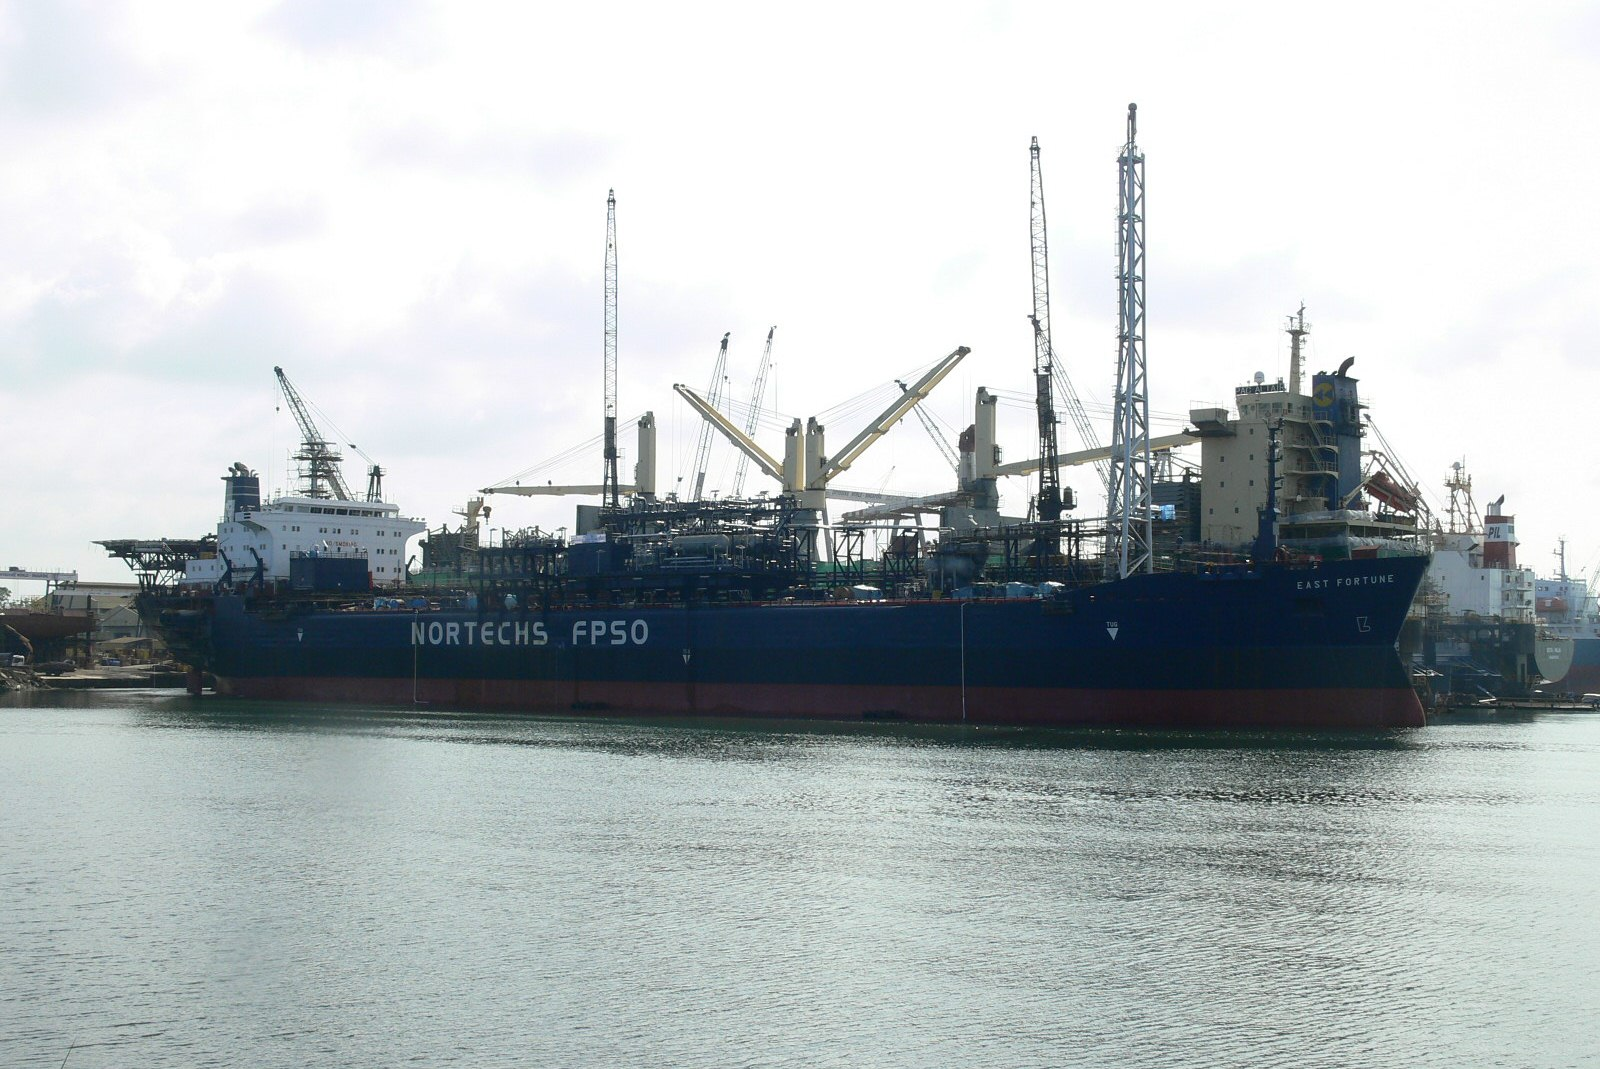 FPSO East Fortune